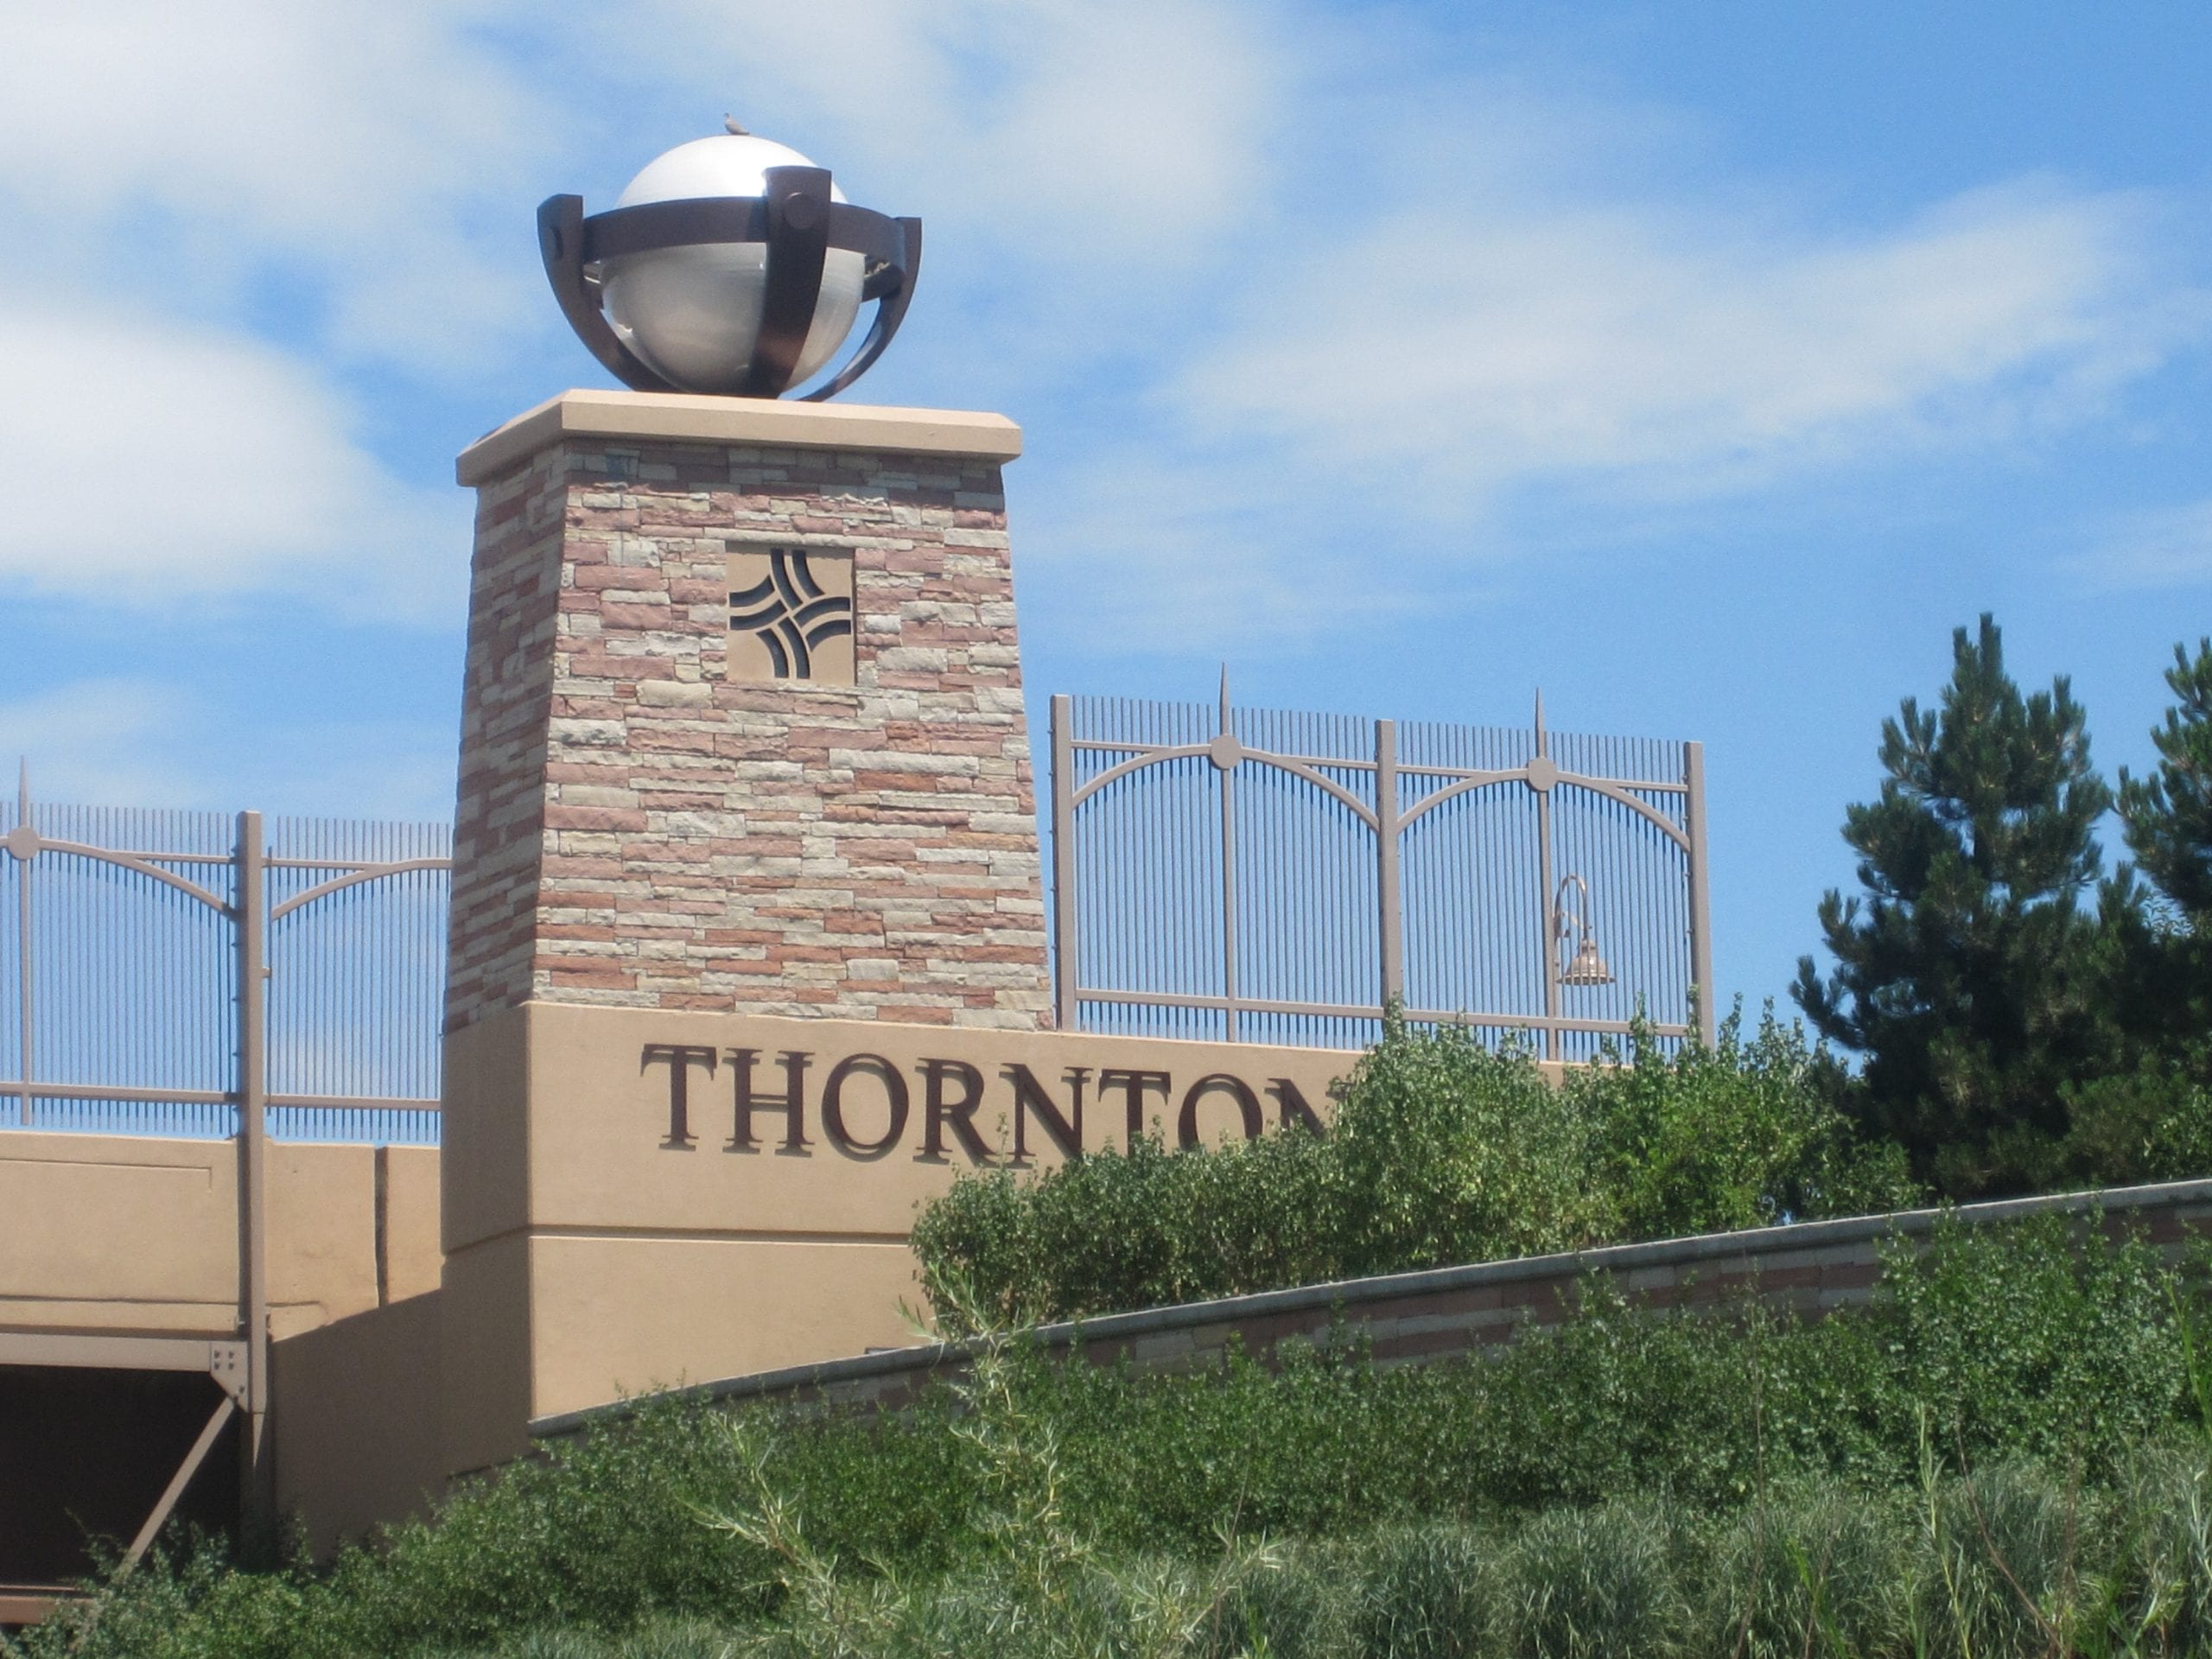 city of Thornton sign